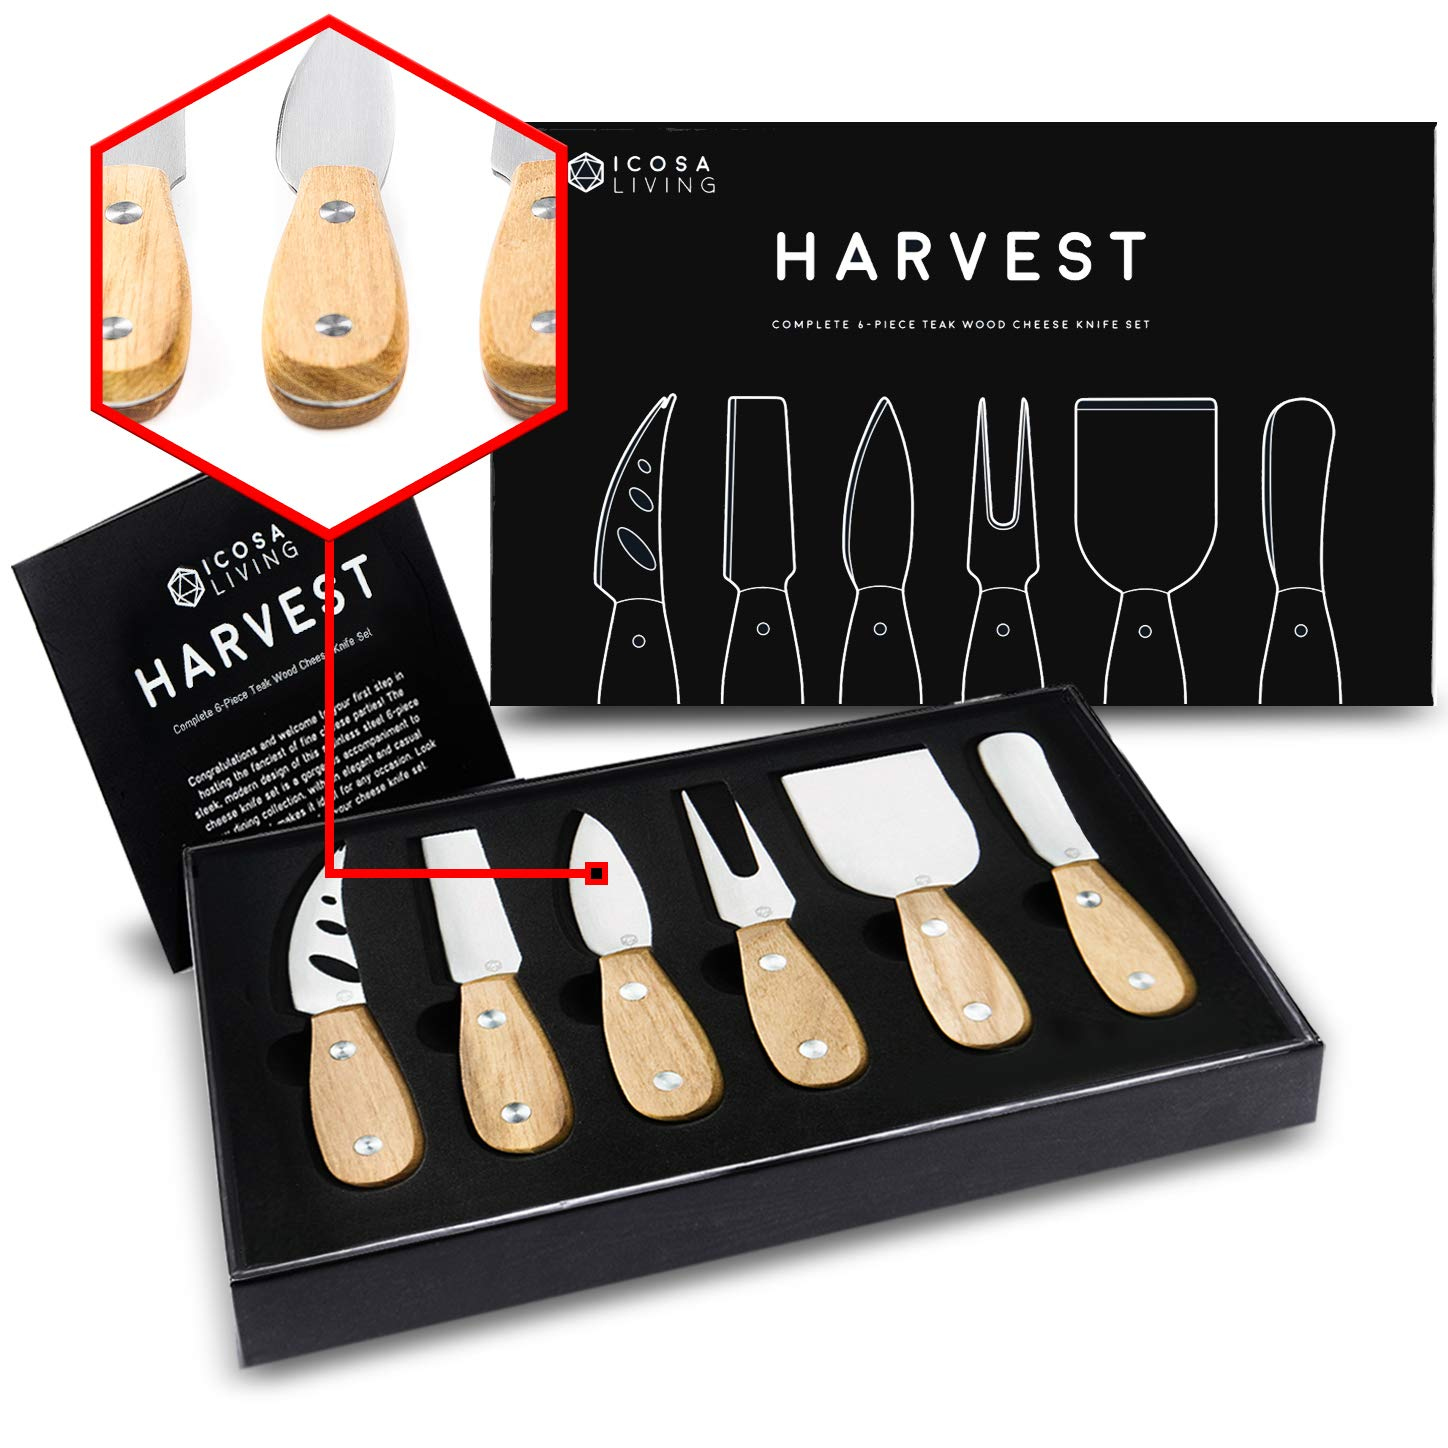 HARVEST Premium 6-Piece Cheese Knife Set - Complete Stainless Steel Cheese Knives Collection with Teak Wood Handles and Full-Length Blades (Gift-Ready) by ICOSA Living